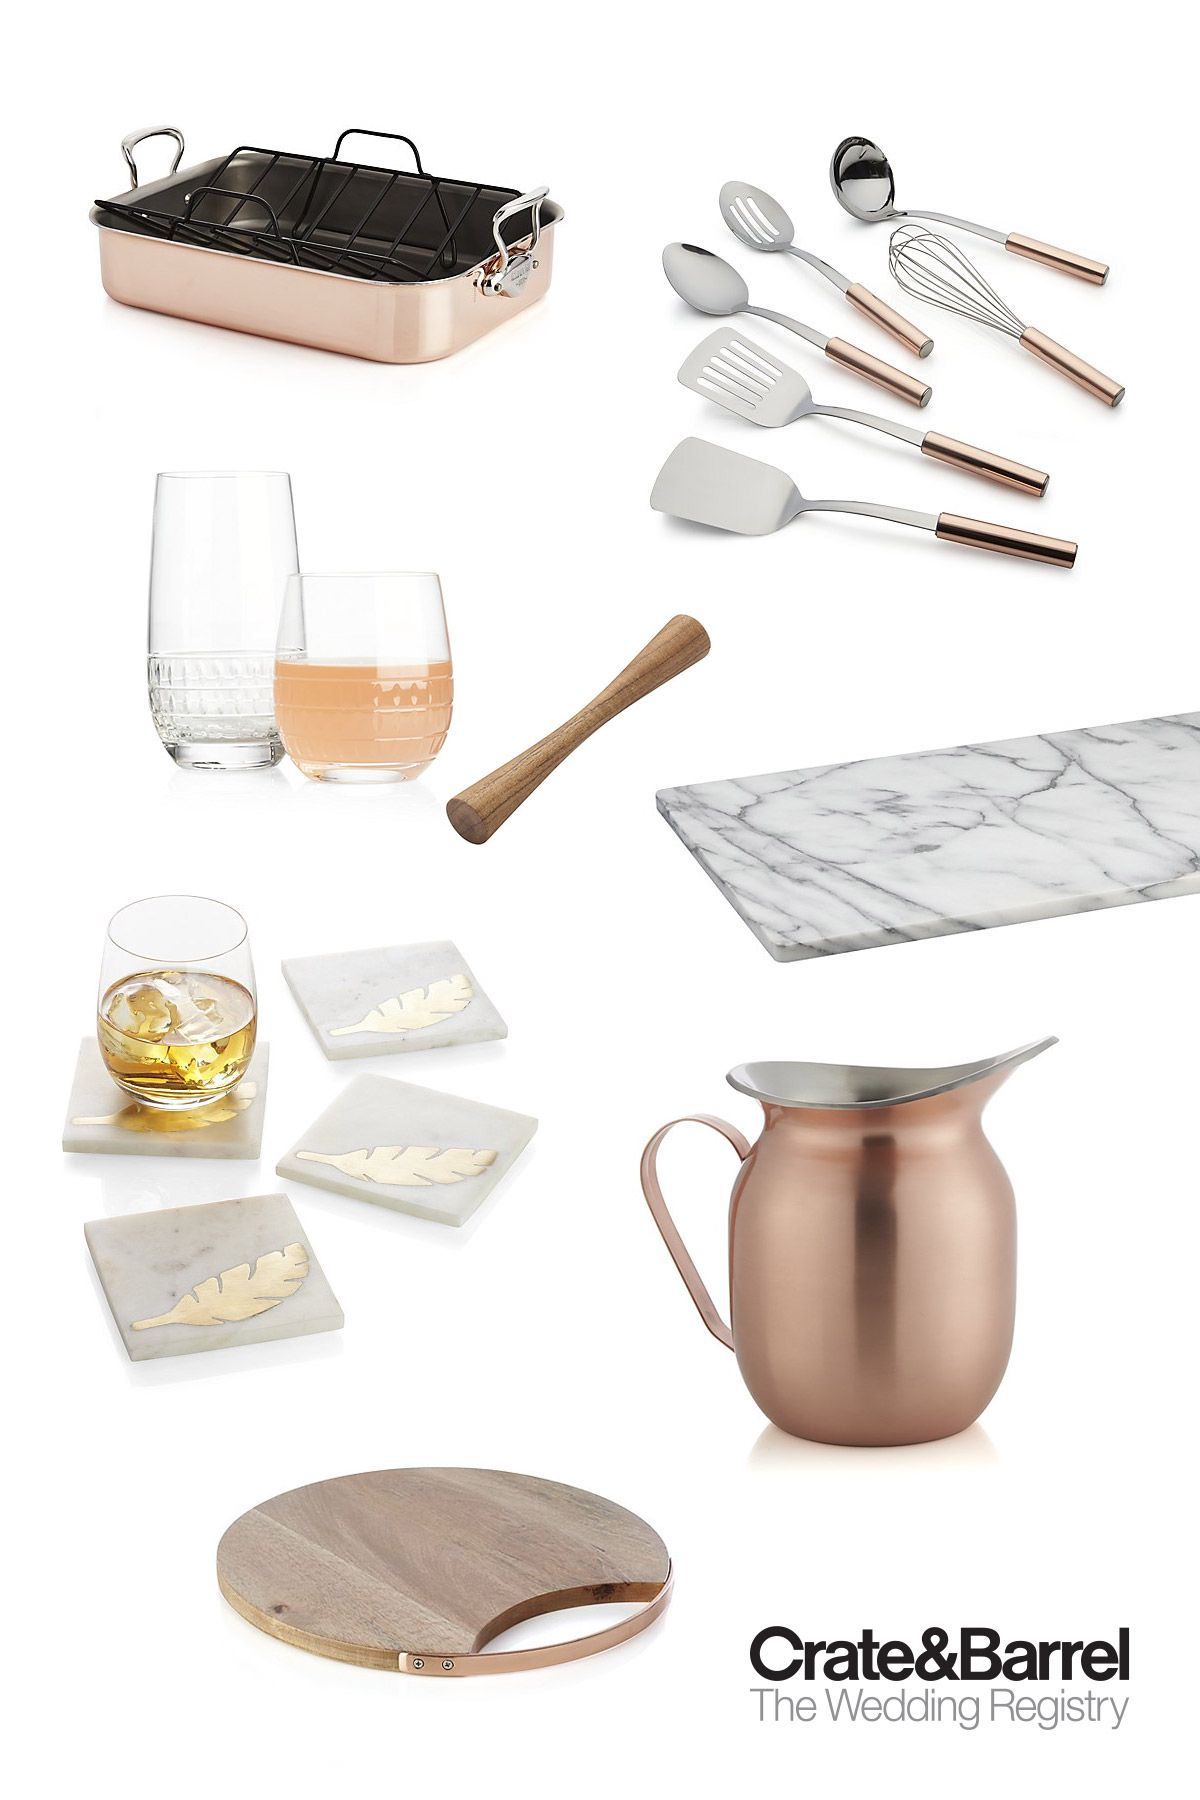 Crate and Barrel The Wedding Registry — Bridal Gift